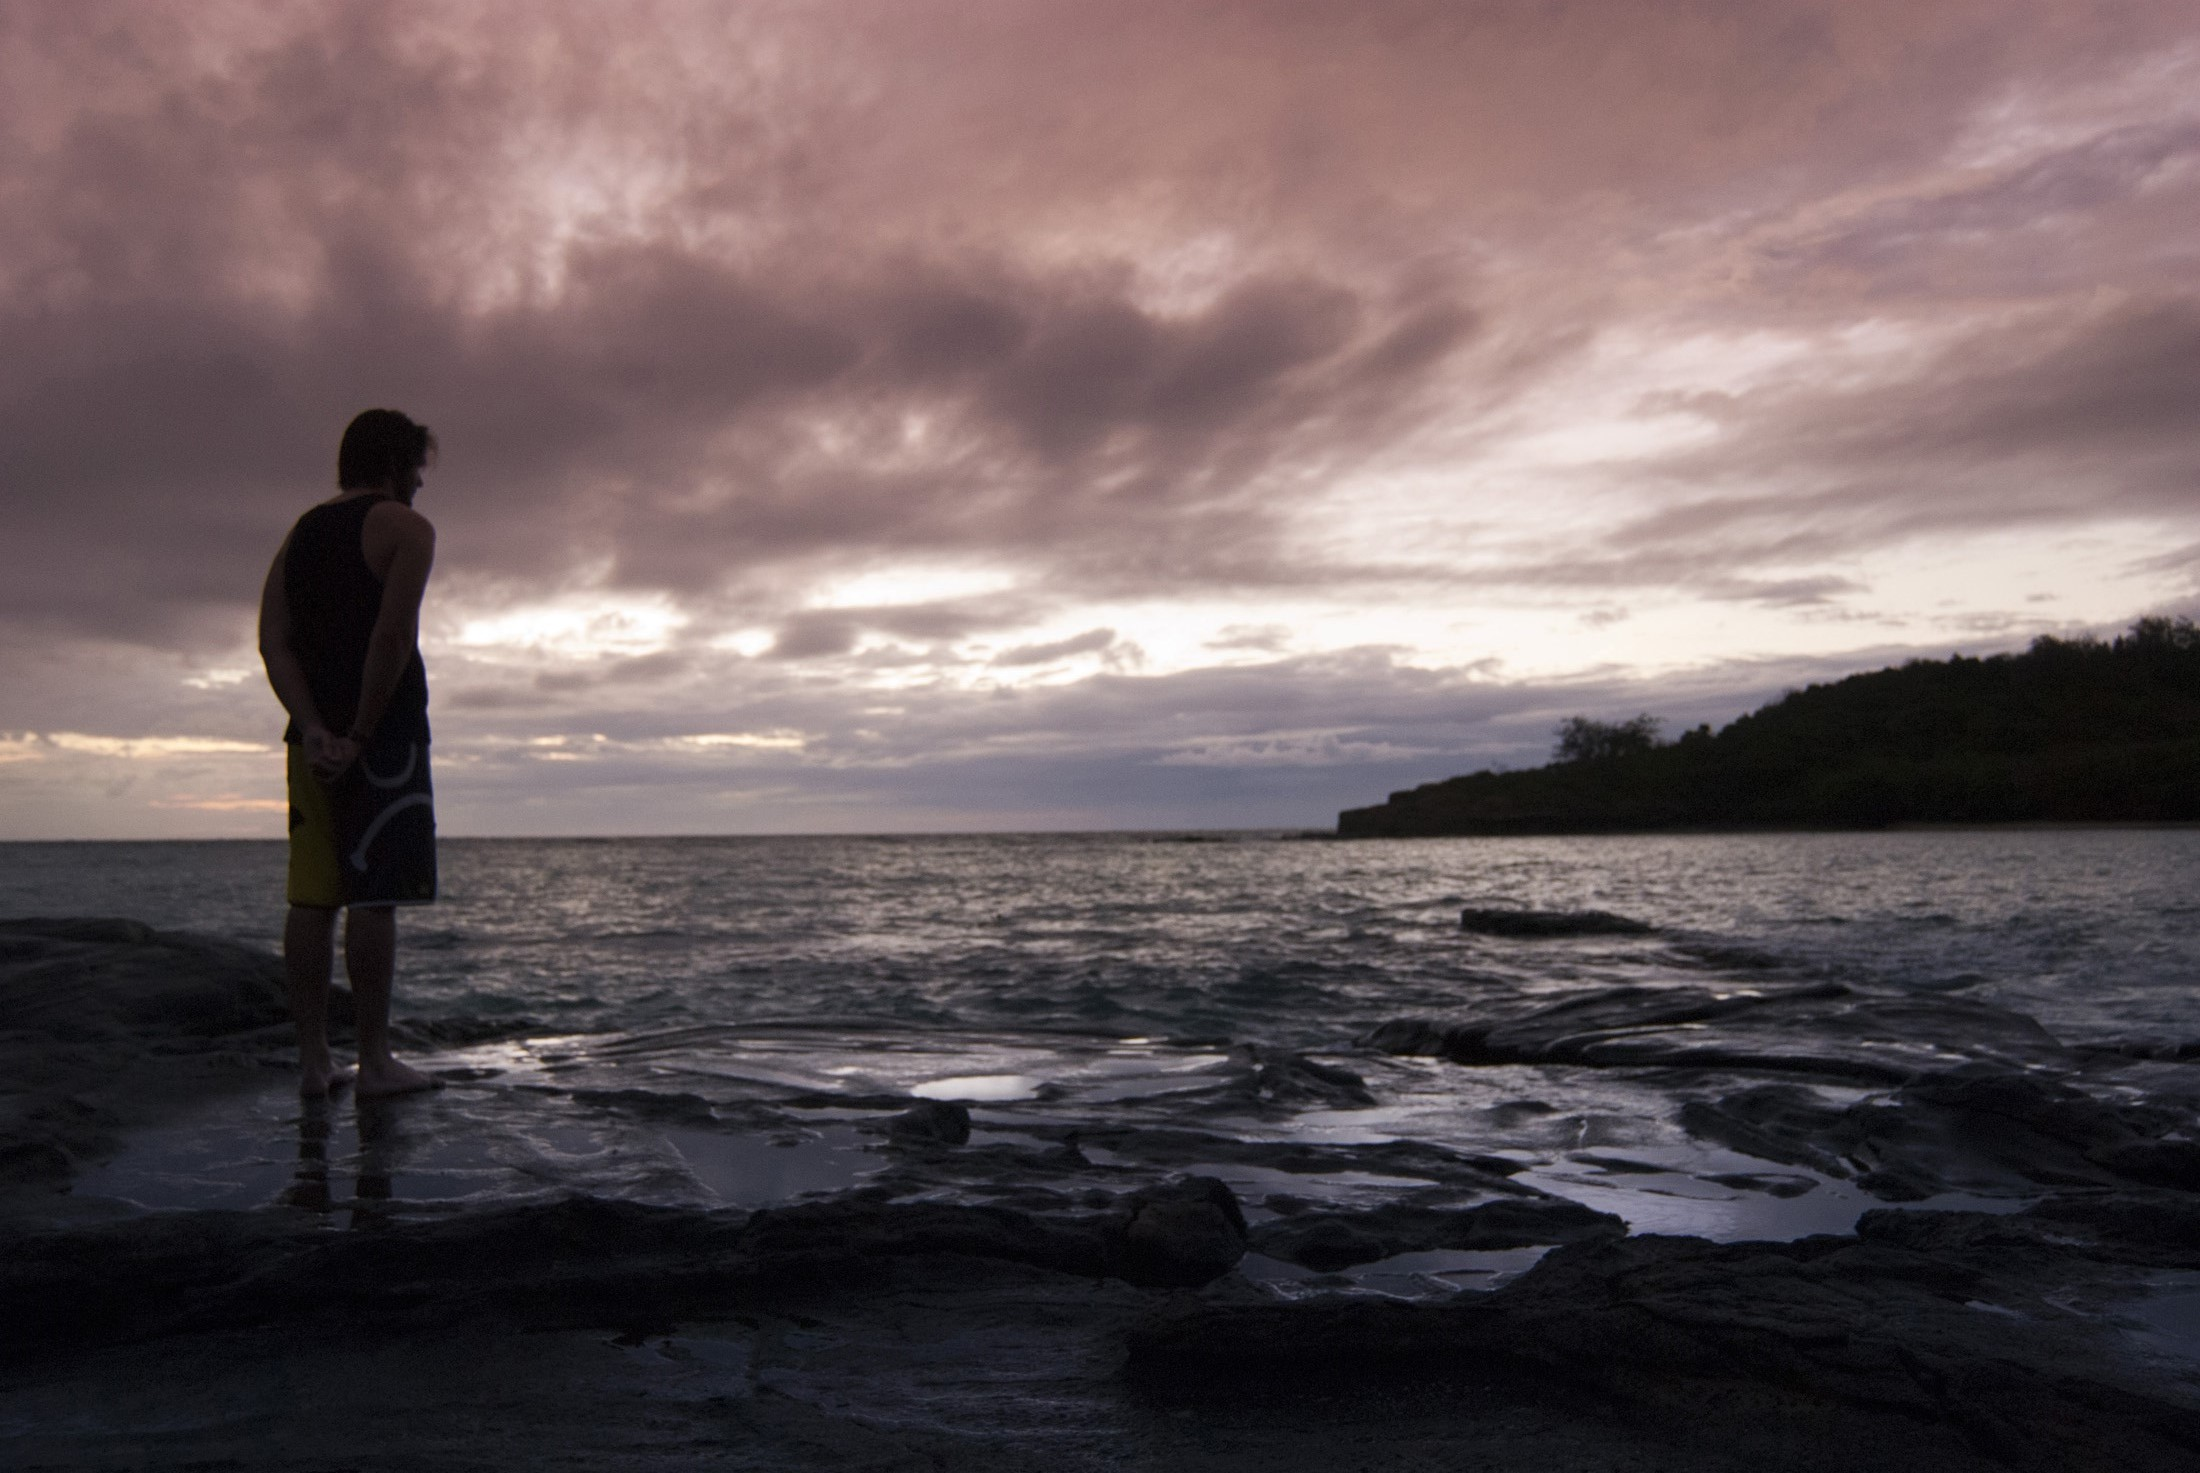 Man in silhouette standing on the seashore watching a marine sunset with clouds tinted a lilac purple